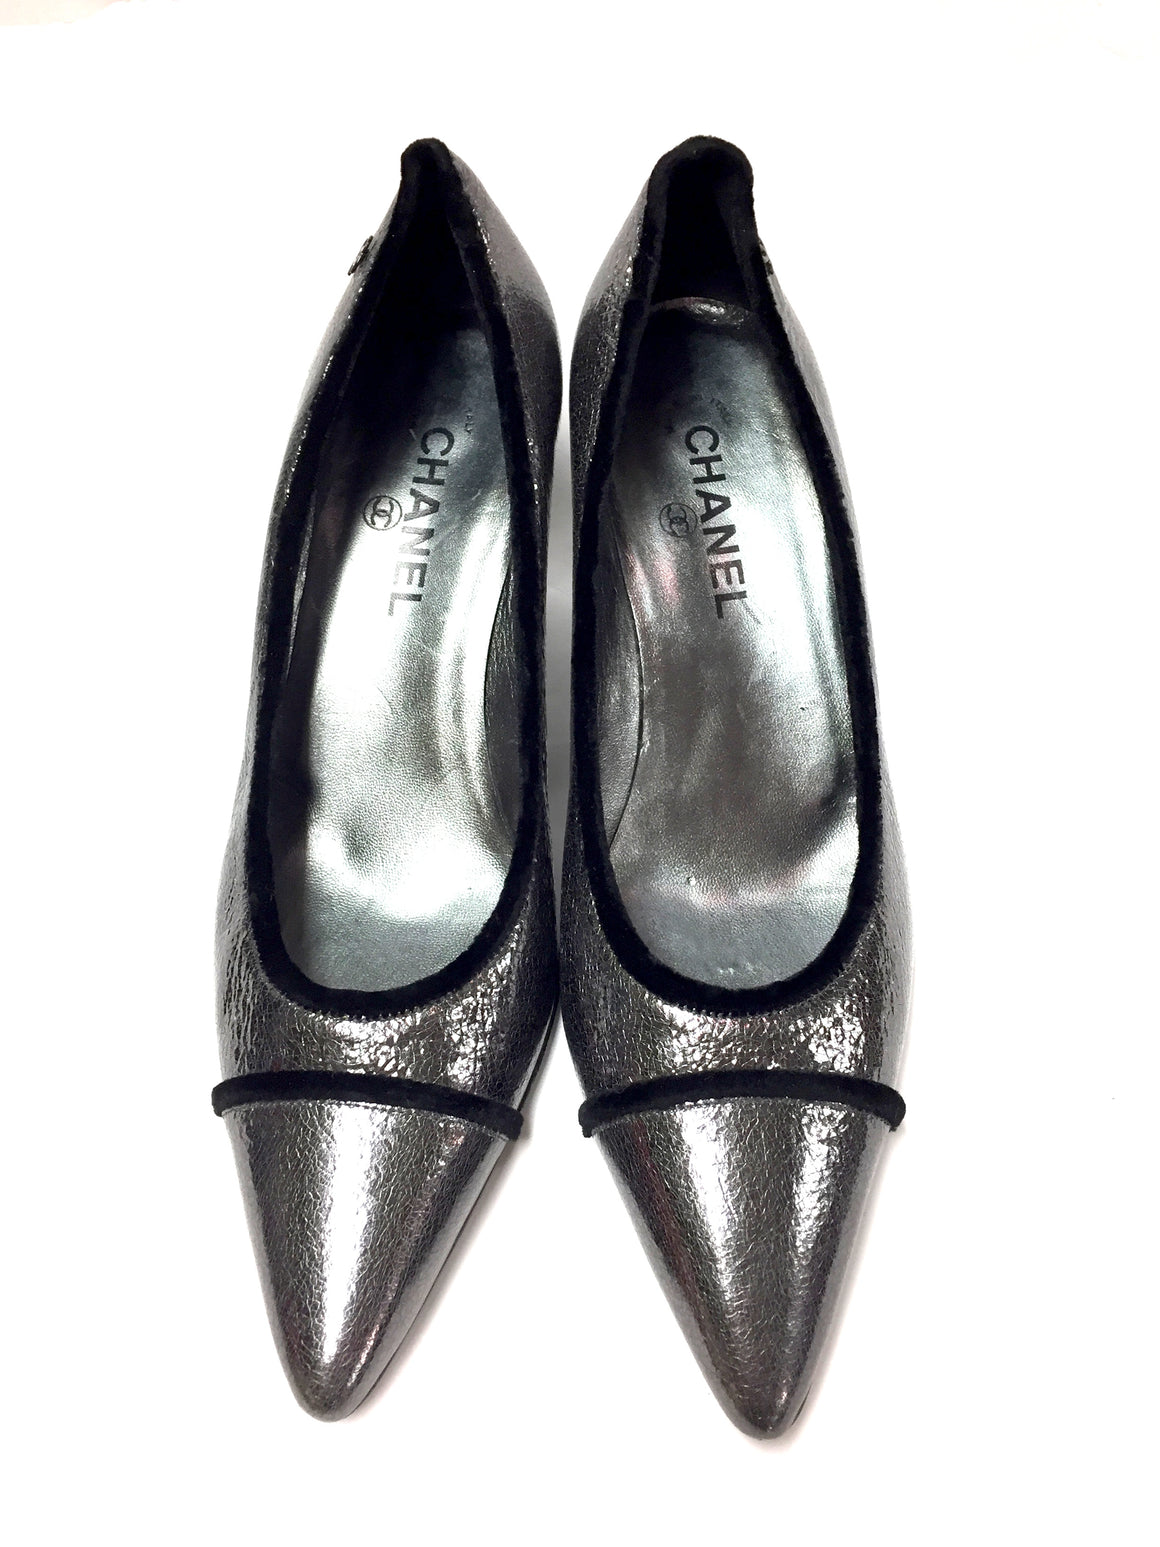 bisbiz.com CHANEL  Gunmetal Crackled Patent Leather Kitten Heel Pumps  Size: 39.5 / 9.5 - Bis Luxury Resale